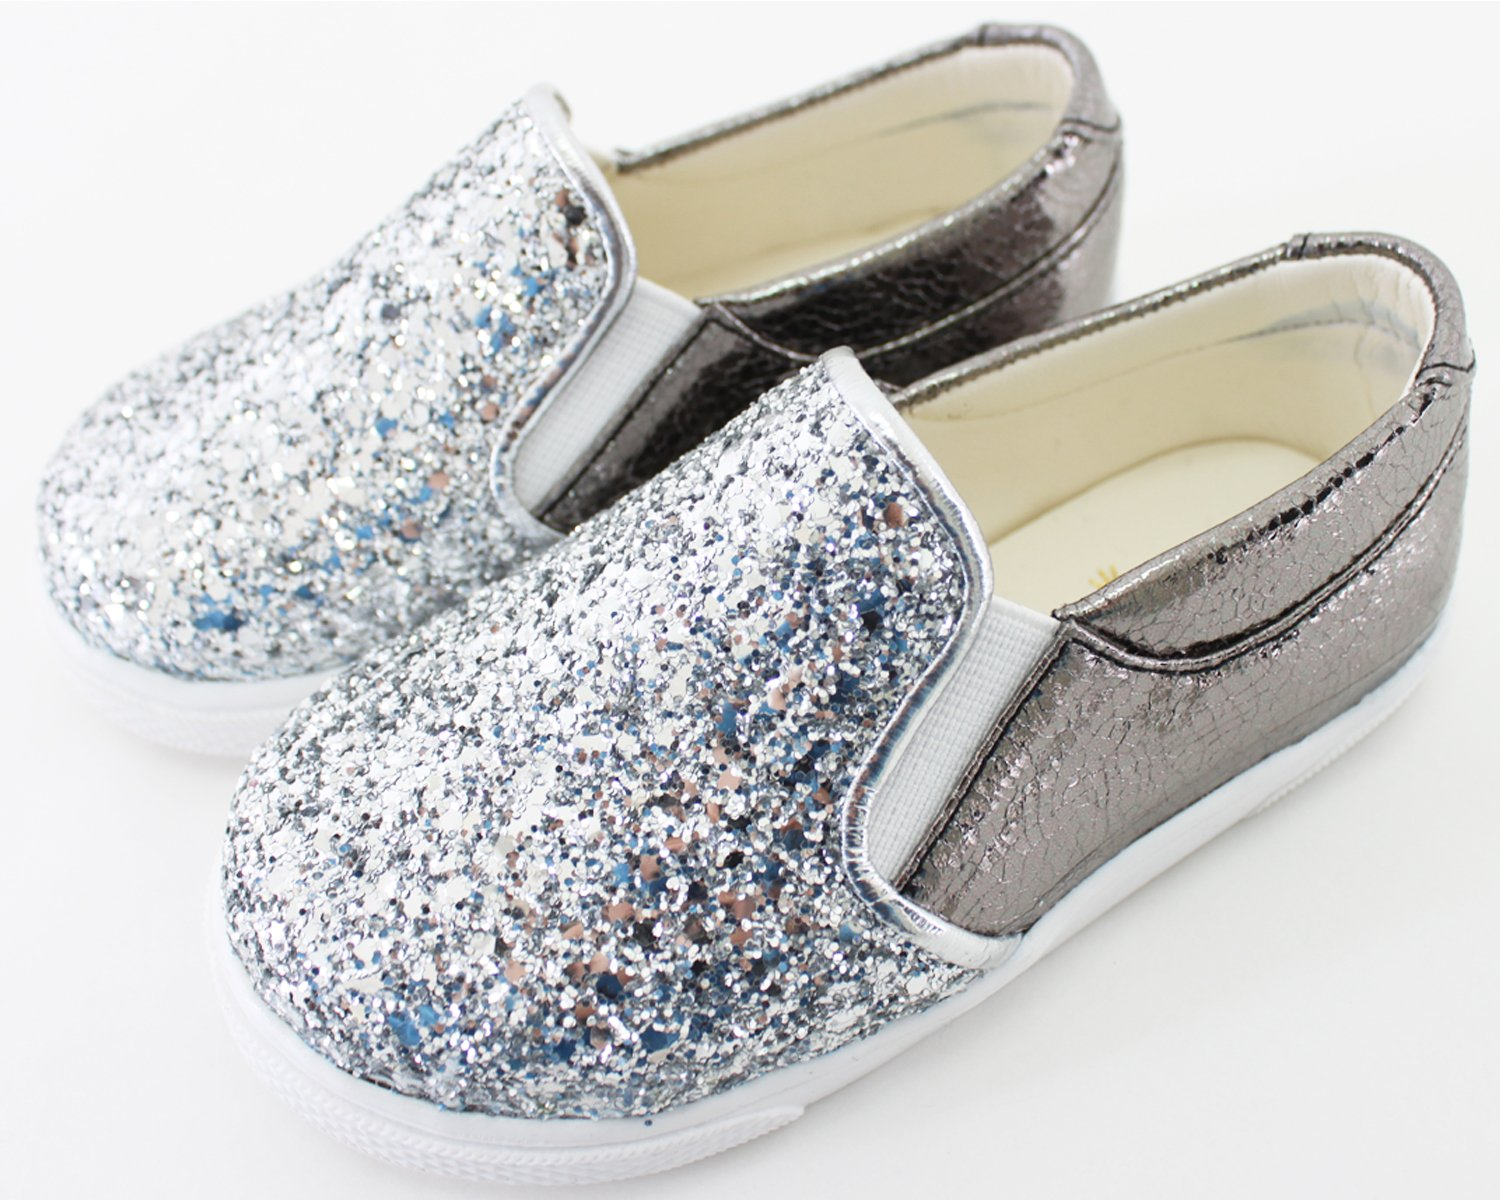 Milky Walk Boys Girls Glitter Slip On Shoes (7 M US Toddler, Silver) by Milky Walk (Image #6)